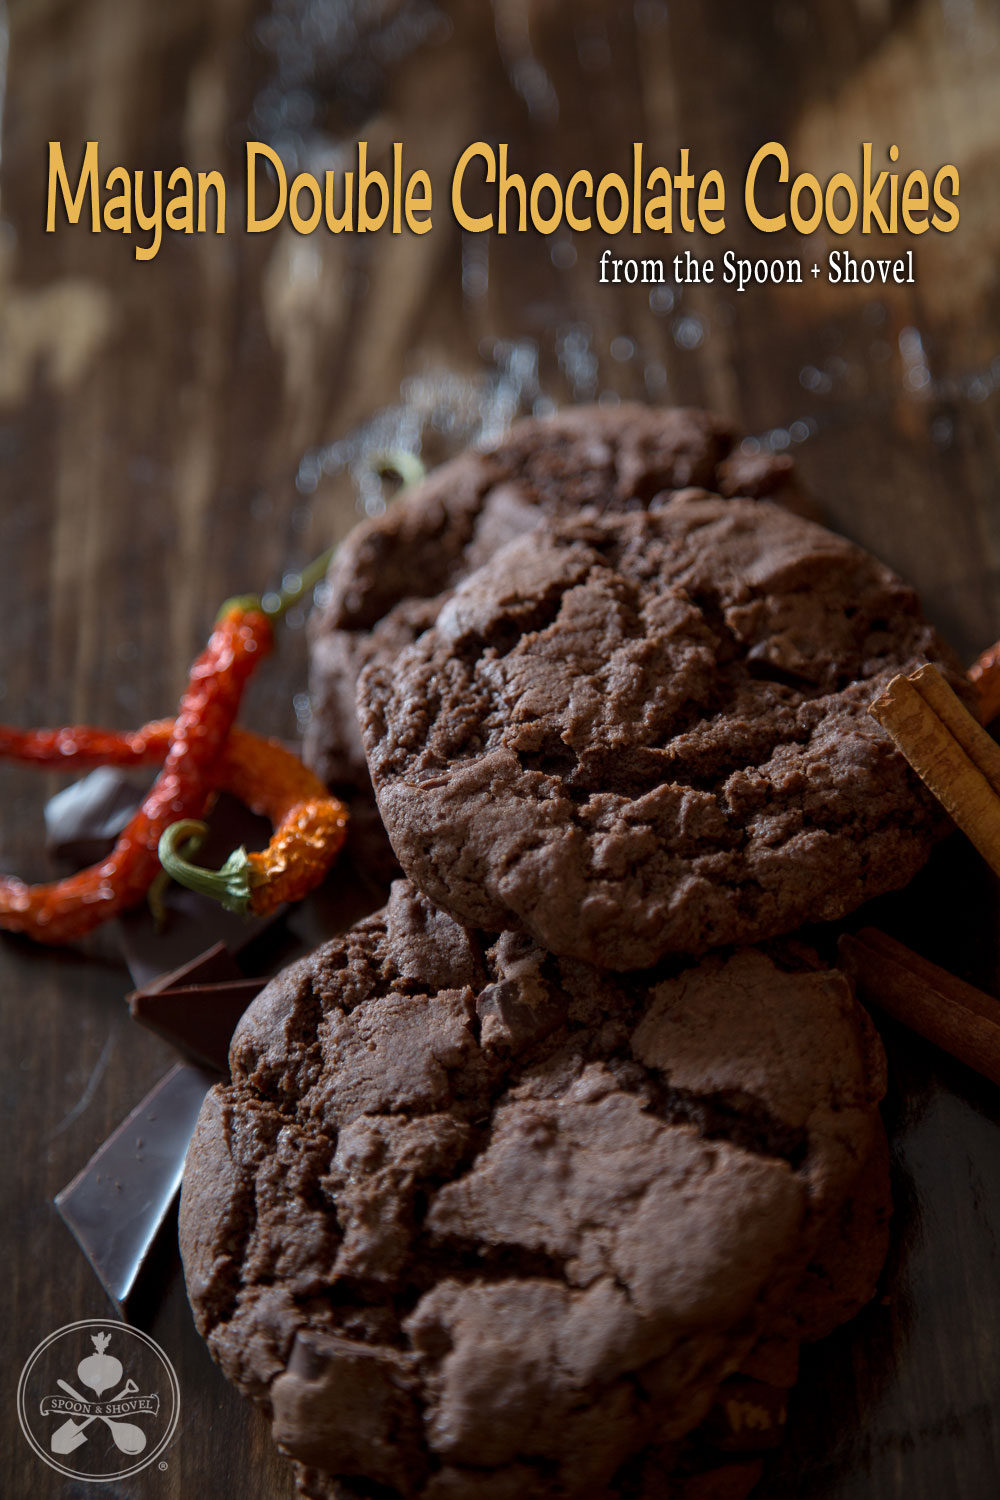 Vegan Mayan double chocolate chip cookies from The Spoon + Shovel